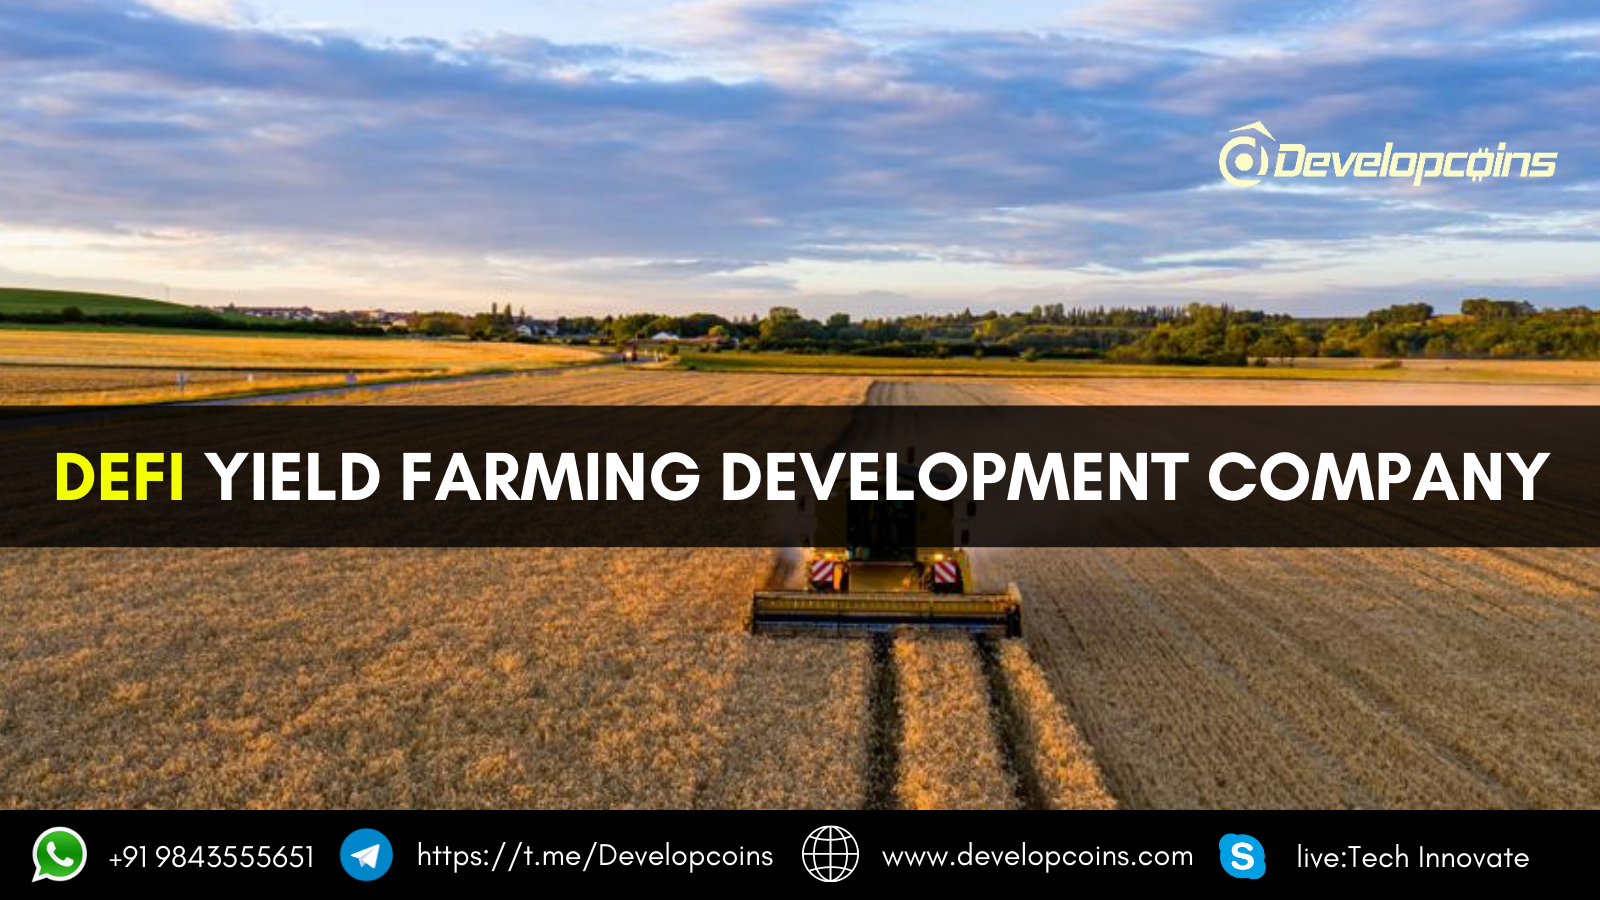 DeFi Yield Farming Development Company